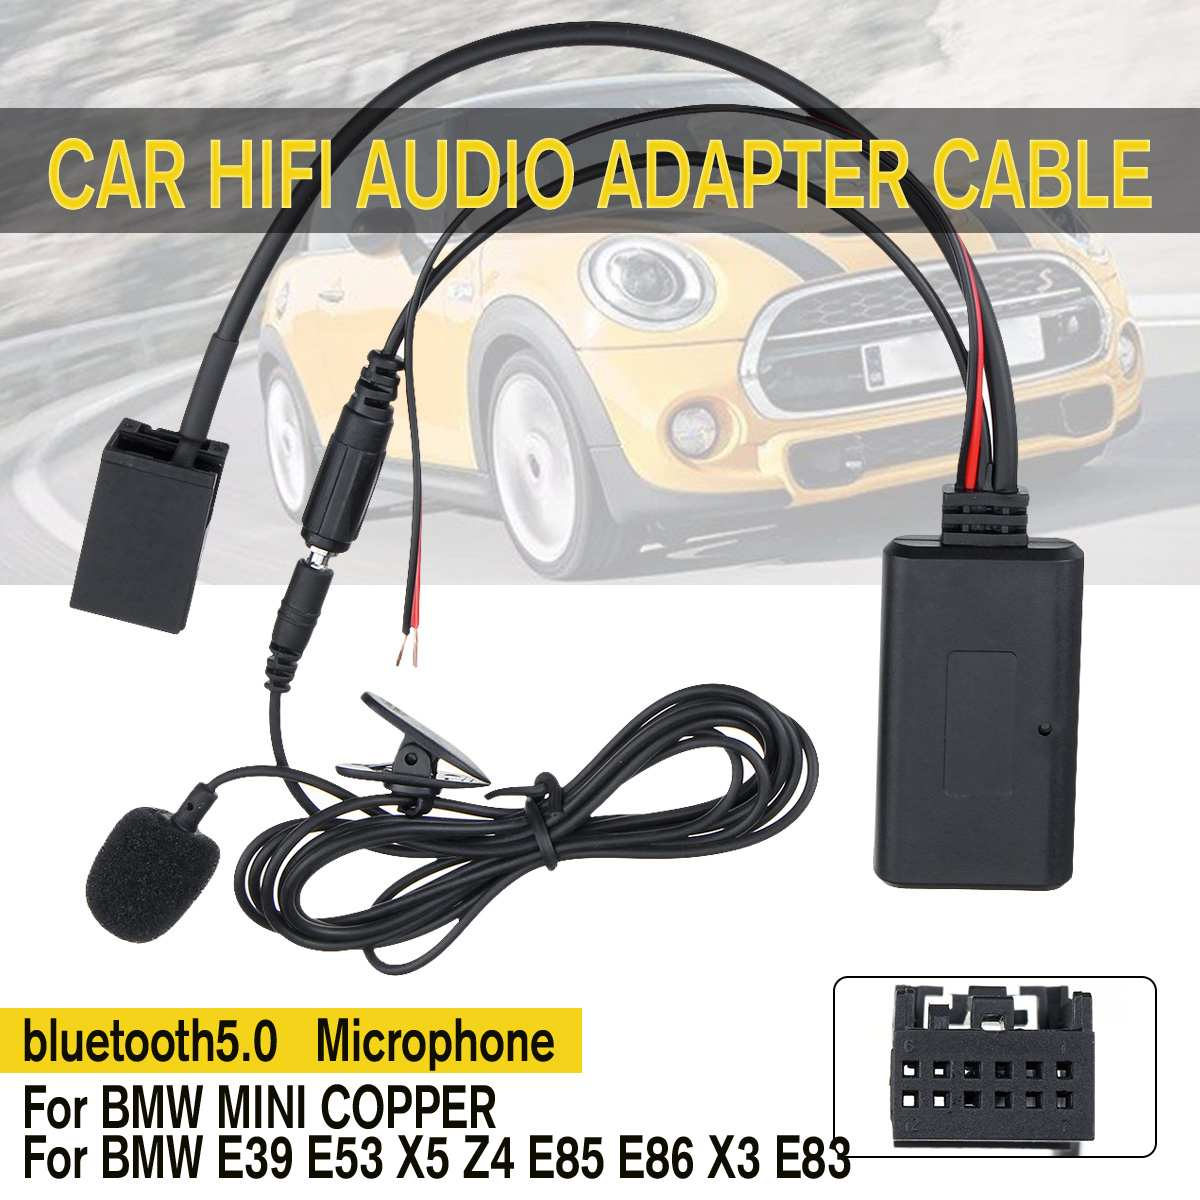 AUX Car Audio Bluetooth 5.0 HIFI Cable Adaptor Microphone For BMW E83 85 86 For MINI COOPER